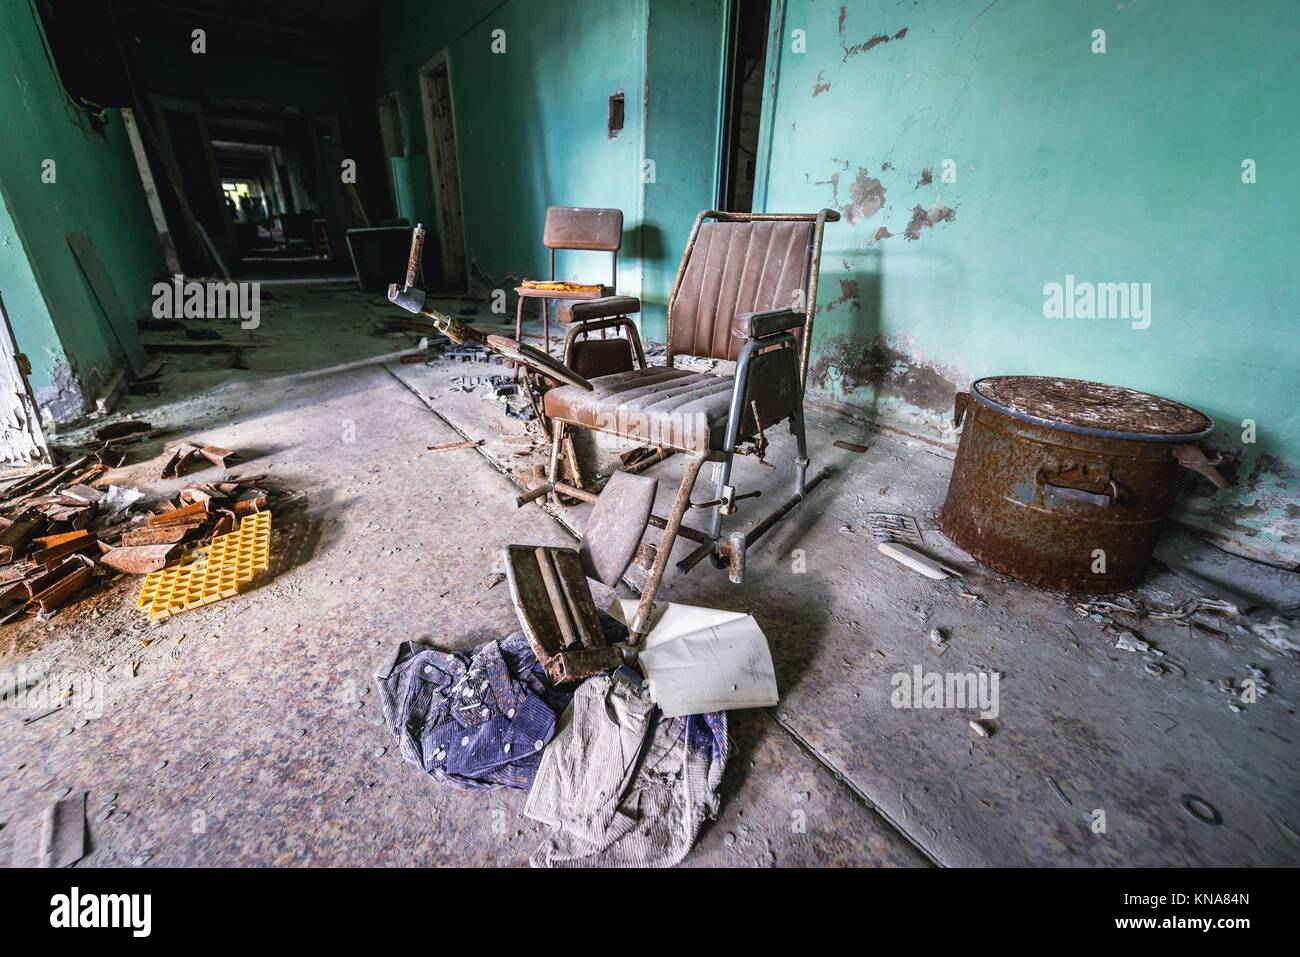 Hospital No. 126 of Pripyat ghost city, Chernobyl Nuclear Power Plant Zone of Alienation around nuclear reactor - Stock Image